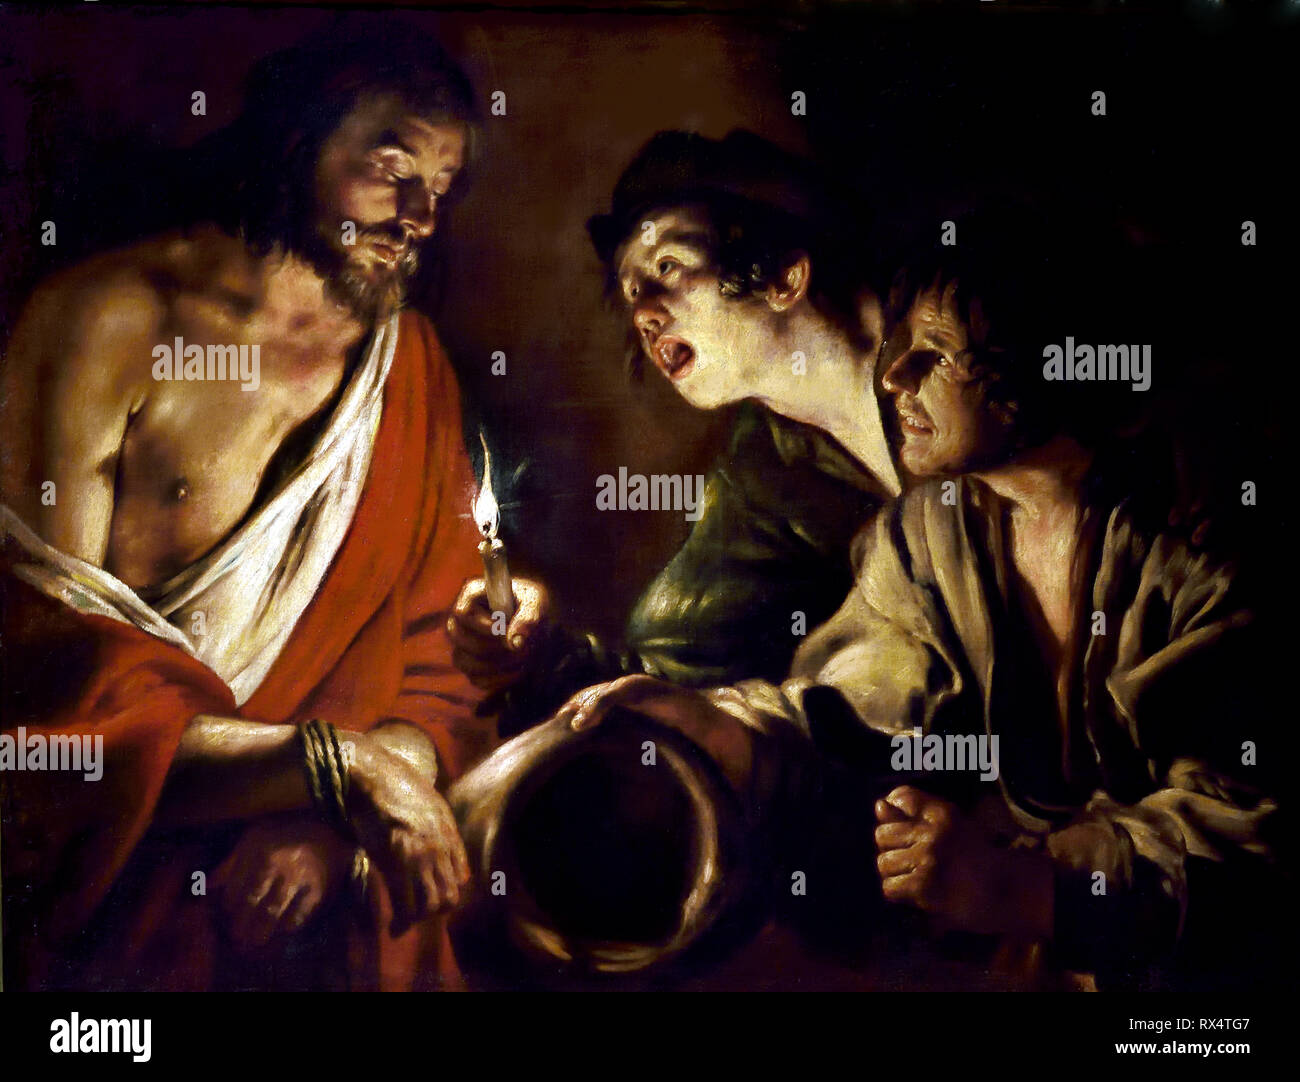 The Mocking of Christ 1626 by Giovanni SERODINE 1600 – 1630 Italy Italian ( Caravaggists, Style of Caravaggio) - Stock Image